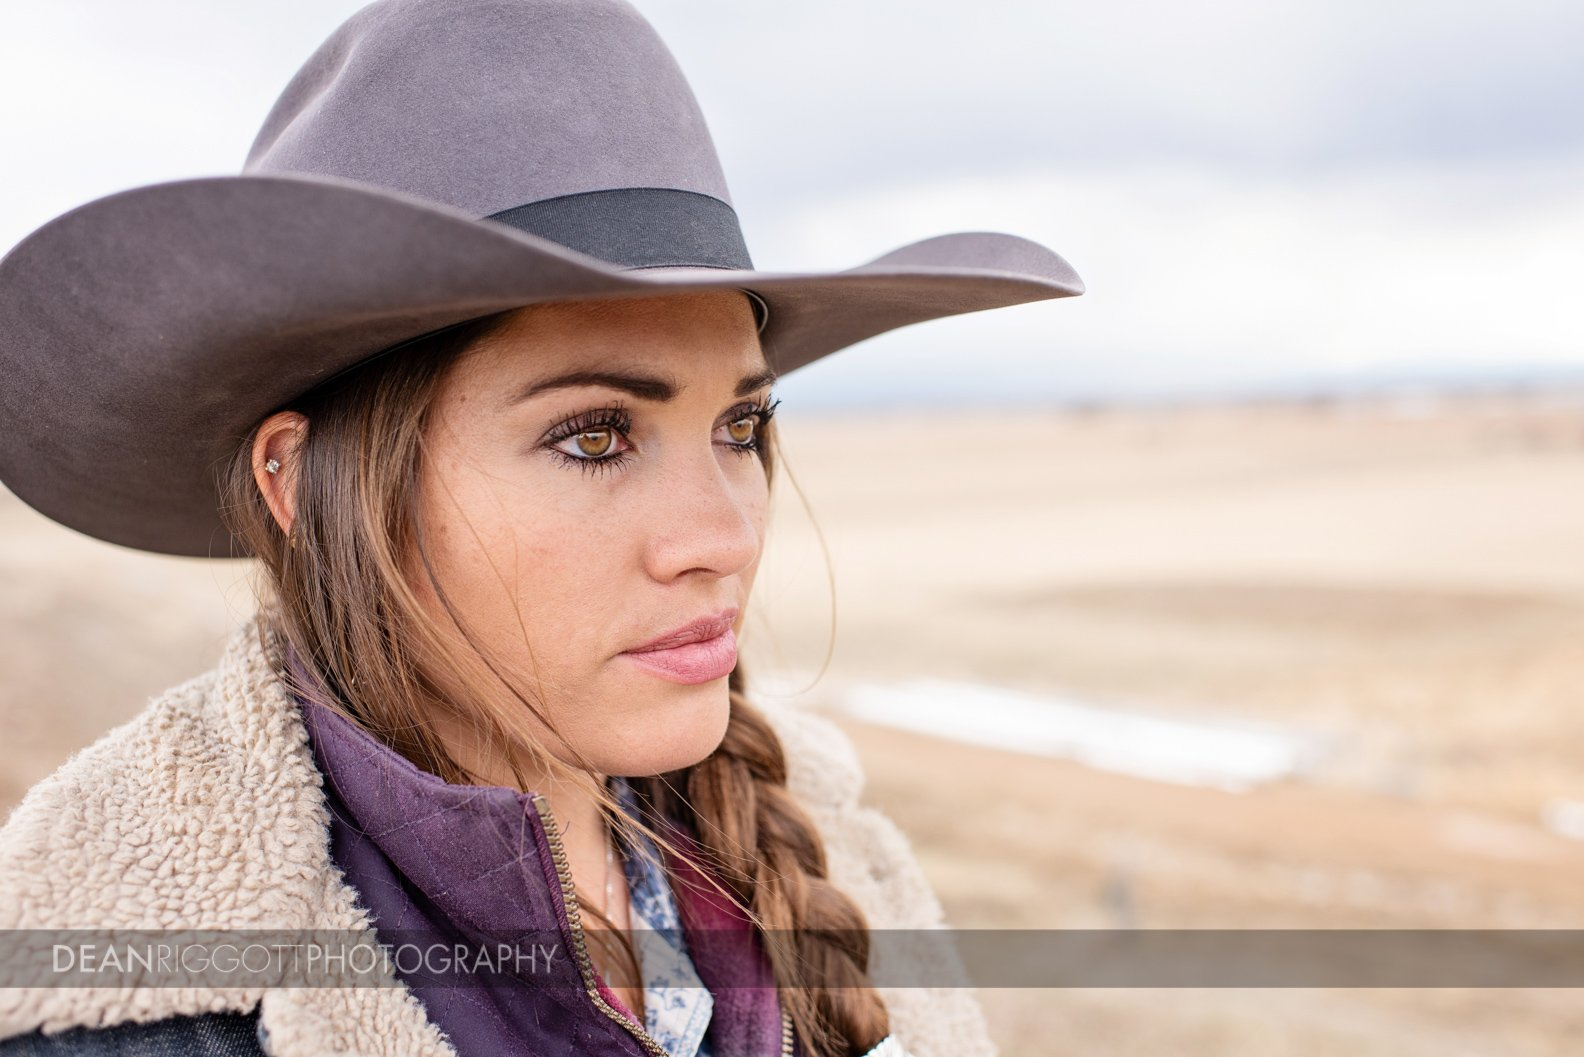 Editorial photography portrait of Colorado cowgirl